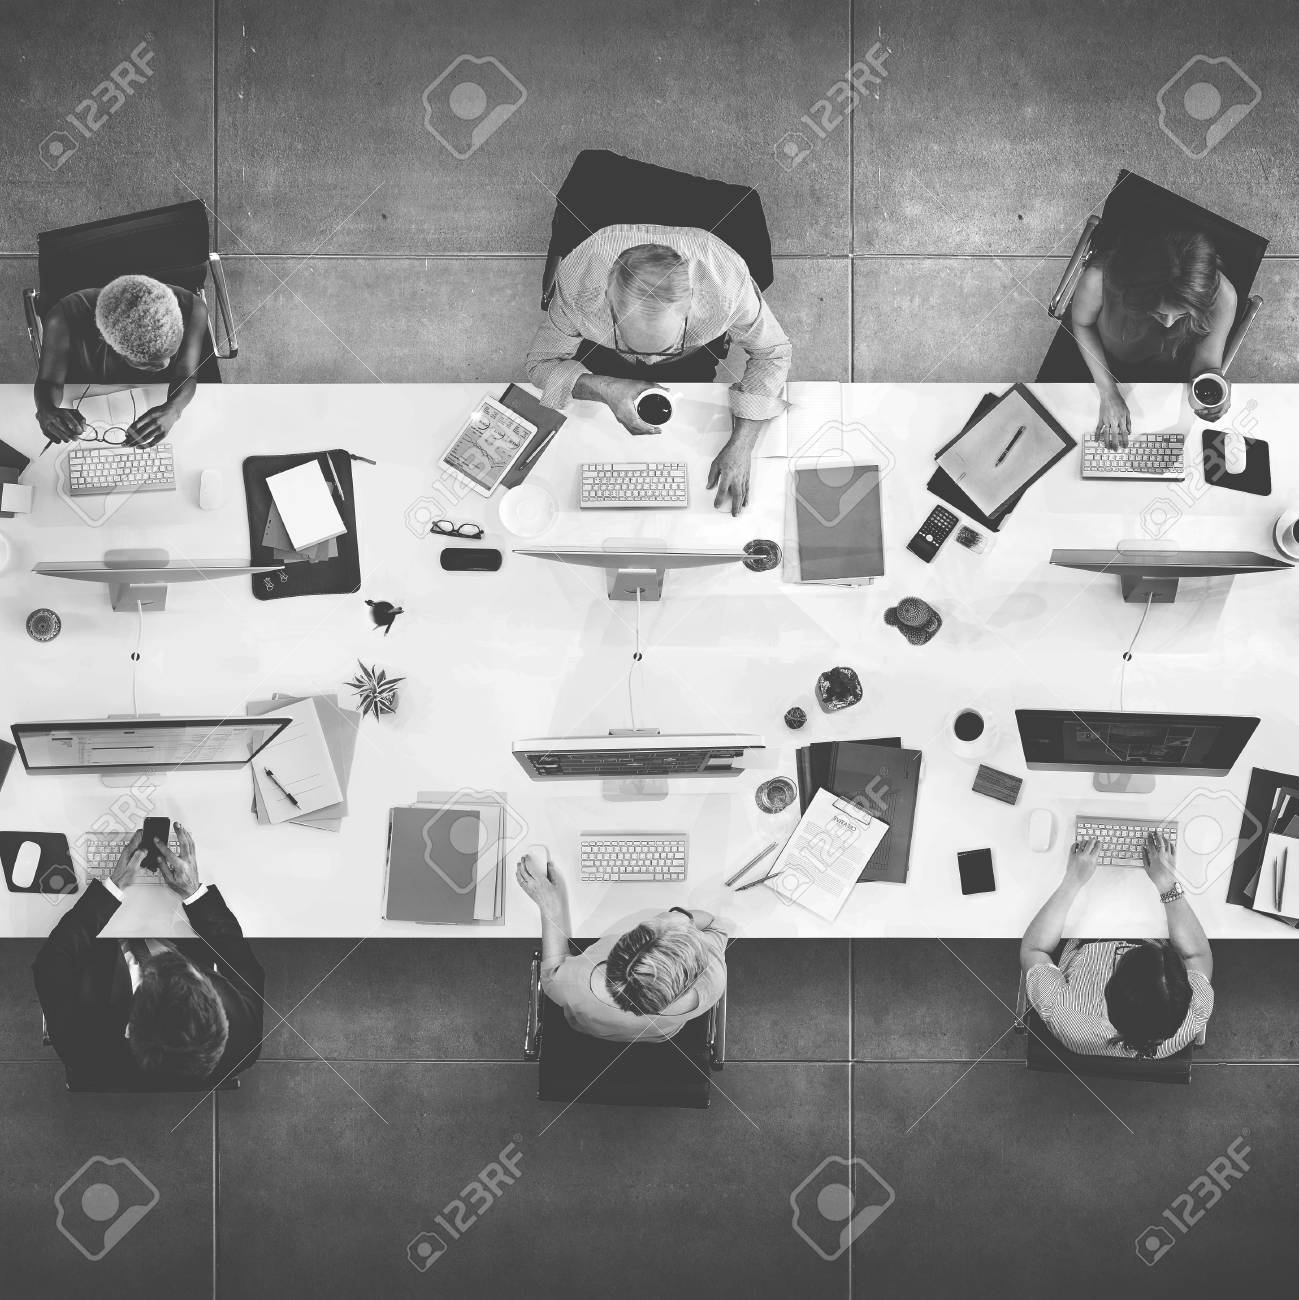 Business Team Meeting Connection Digital Technology Concept - 53071976